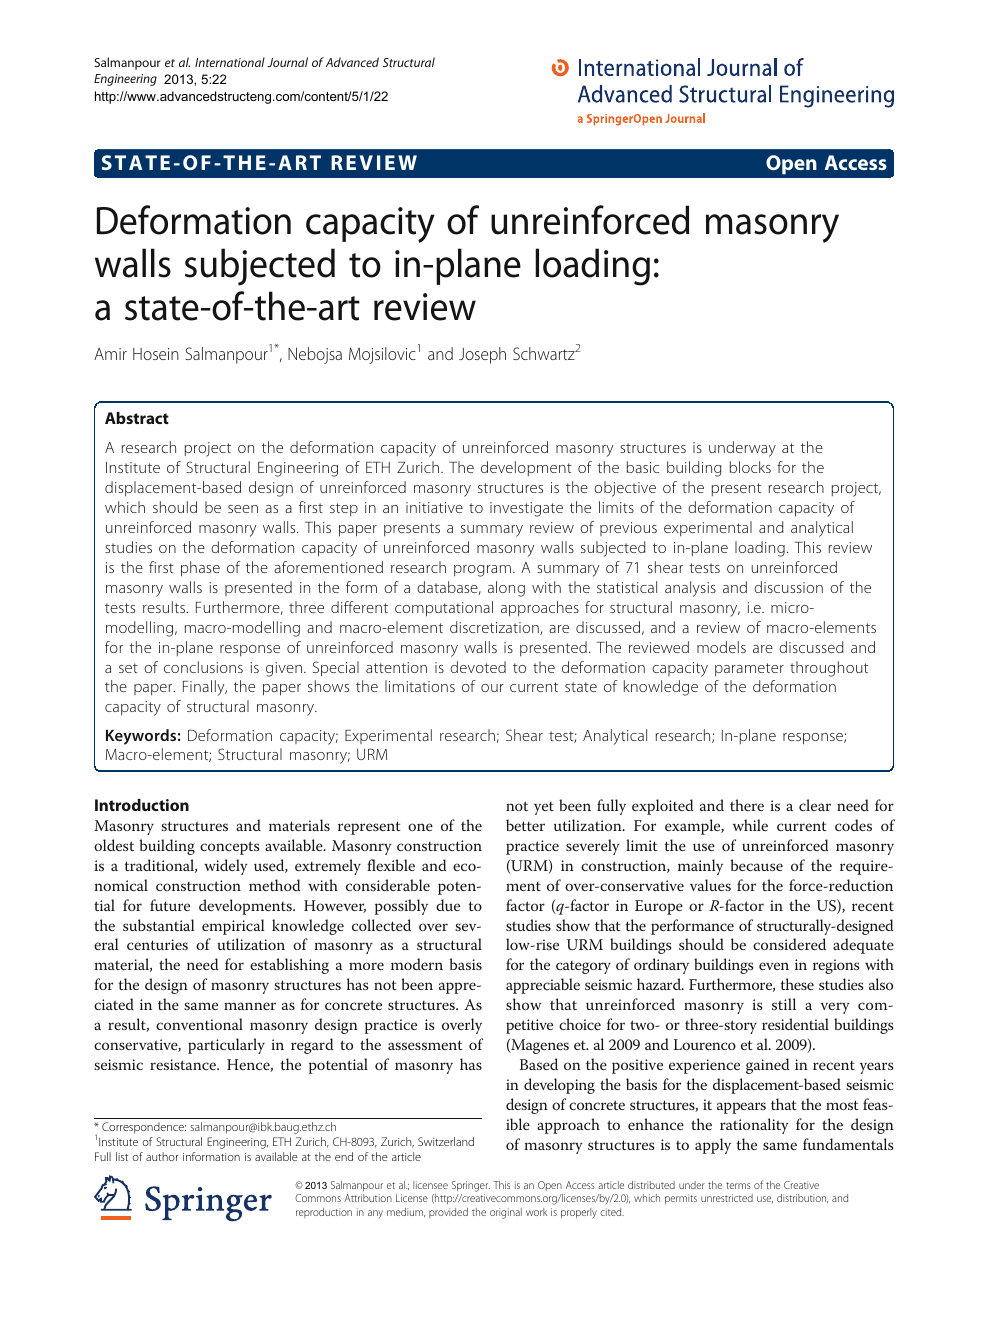 Deformation capacity of unreinforced masonry walls subjected to in